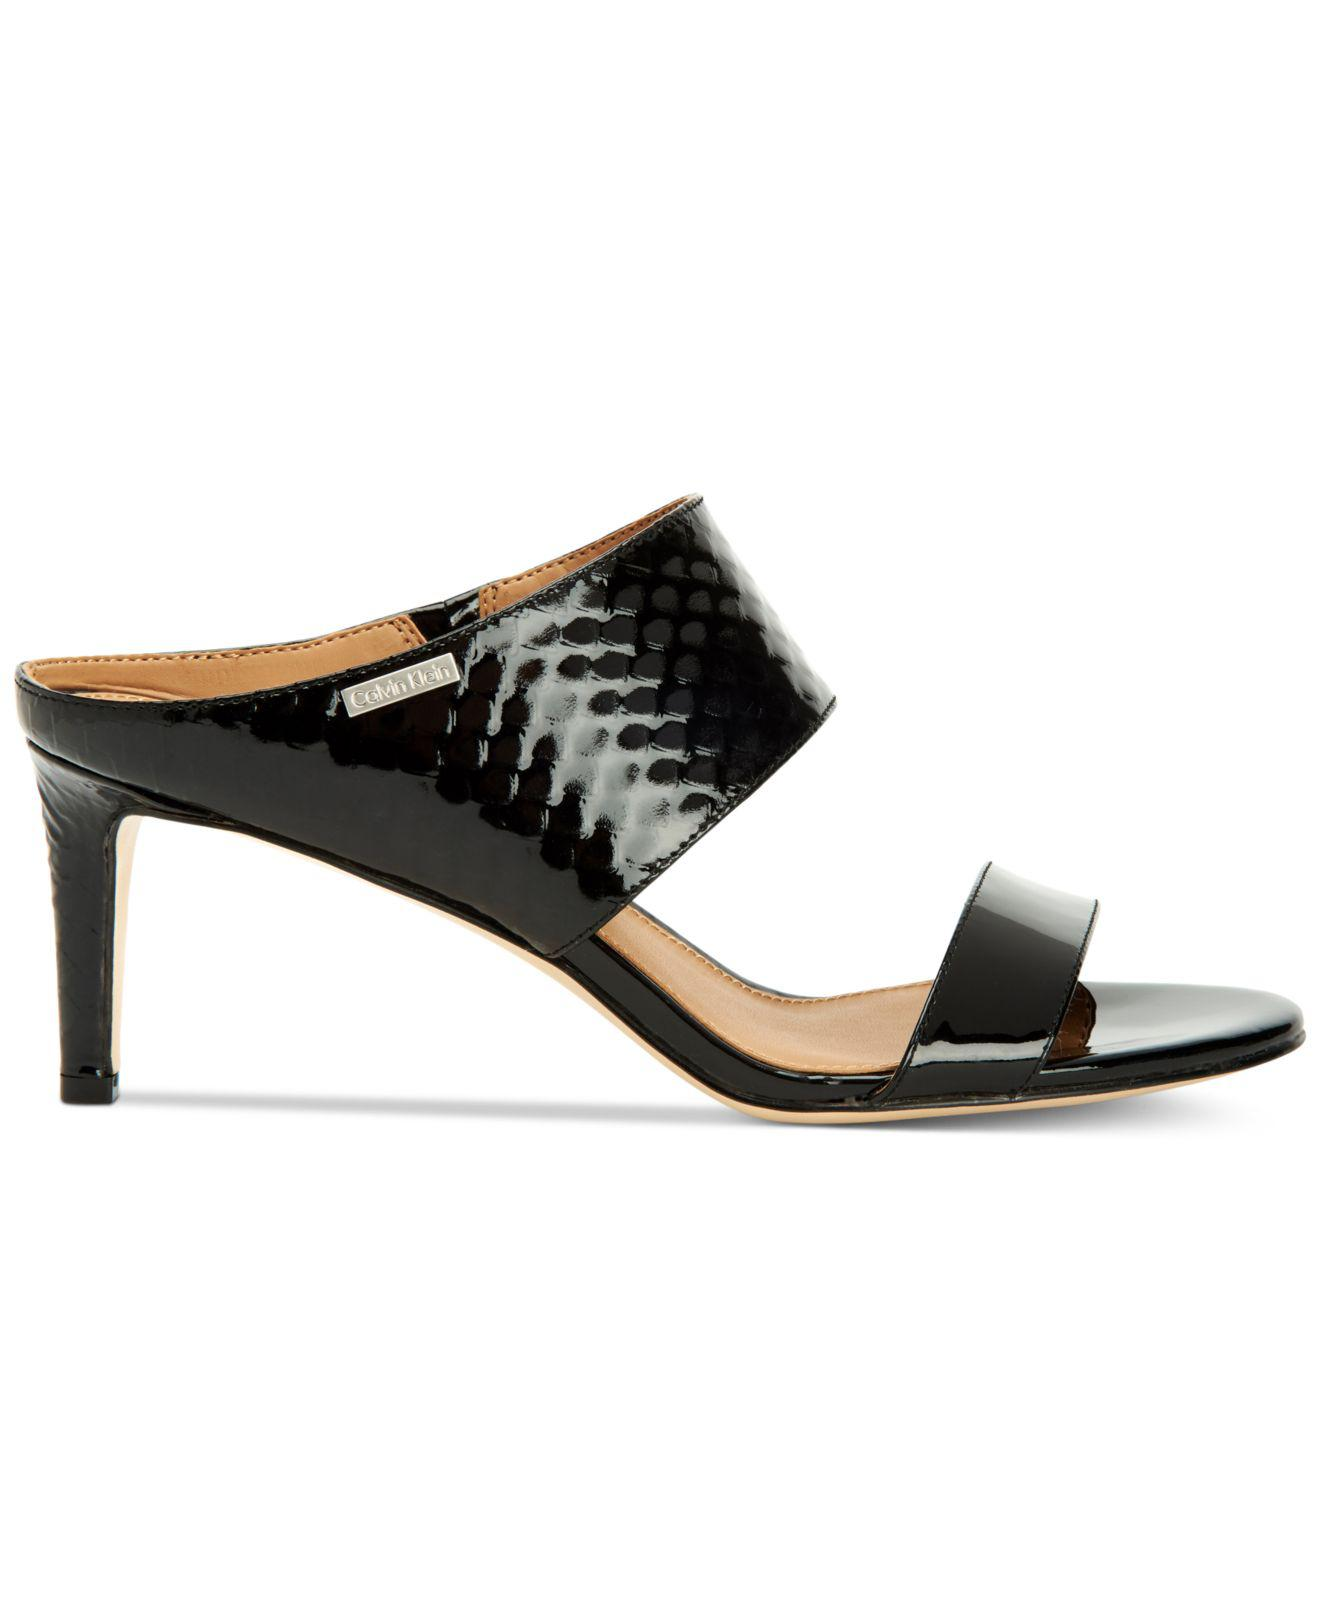 ae0e6ec955c Lyst - Calvin Klein Women s Cecily Wide-strap Sandals in Black - Save 51%